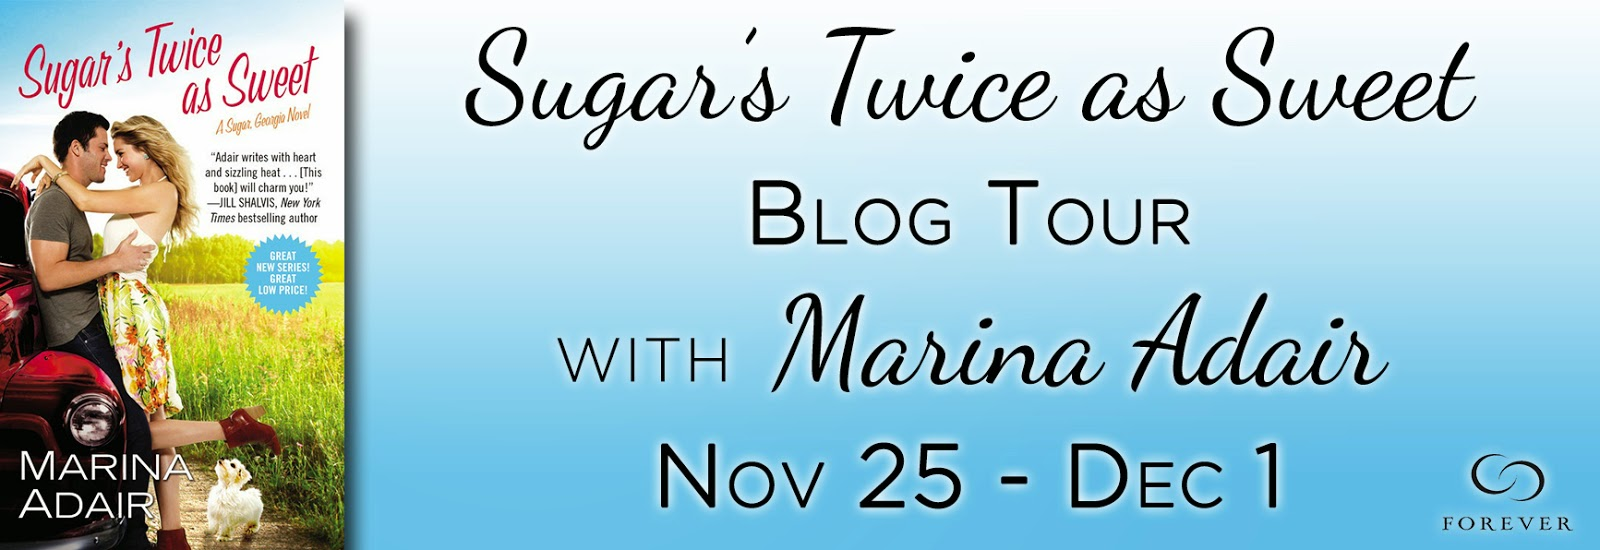 Blog Tour: Book Spotlight + Top 5 List + Giveaway – Sugar's Twice as Sweet by Marina Adair